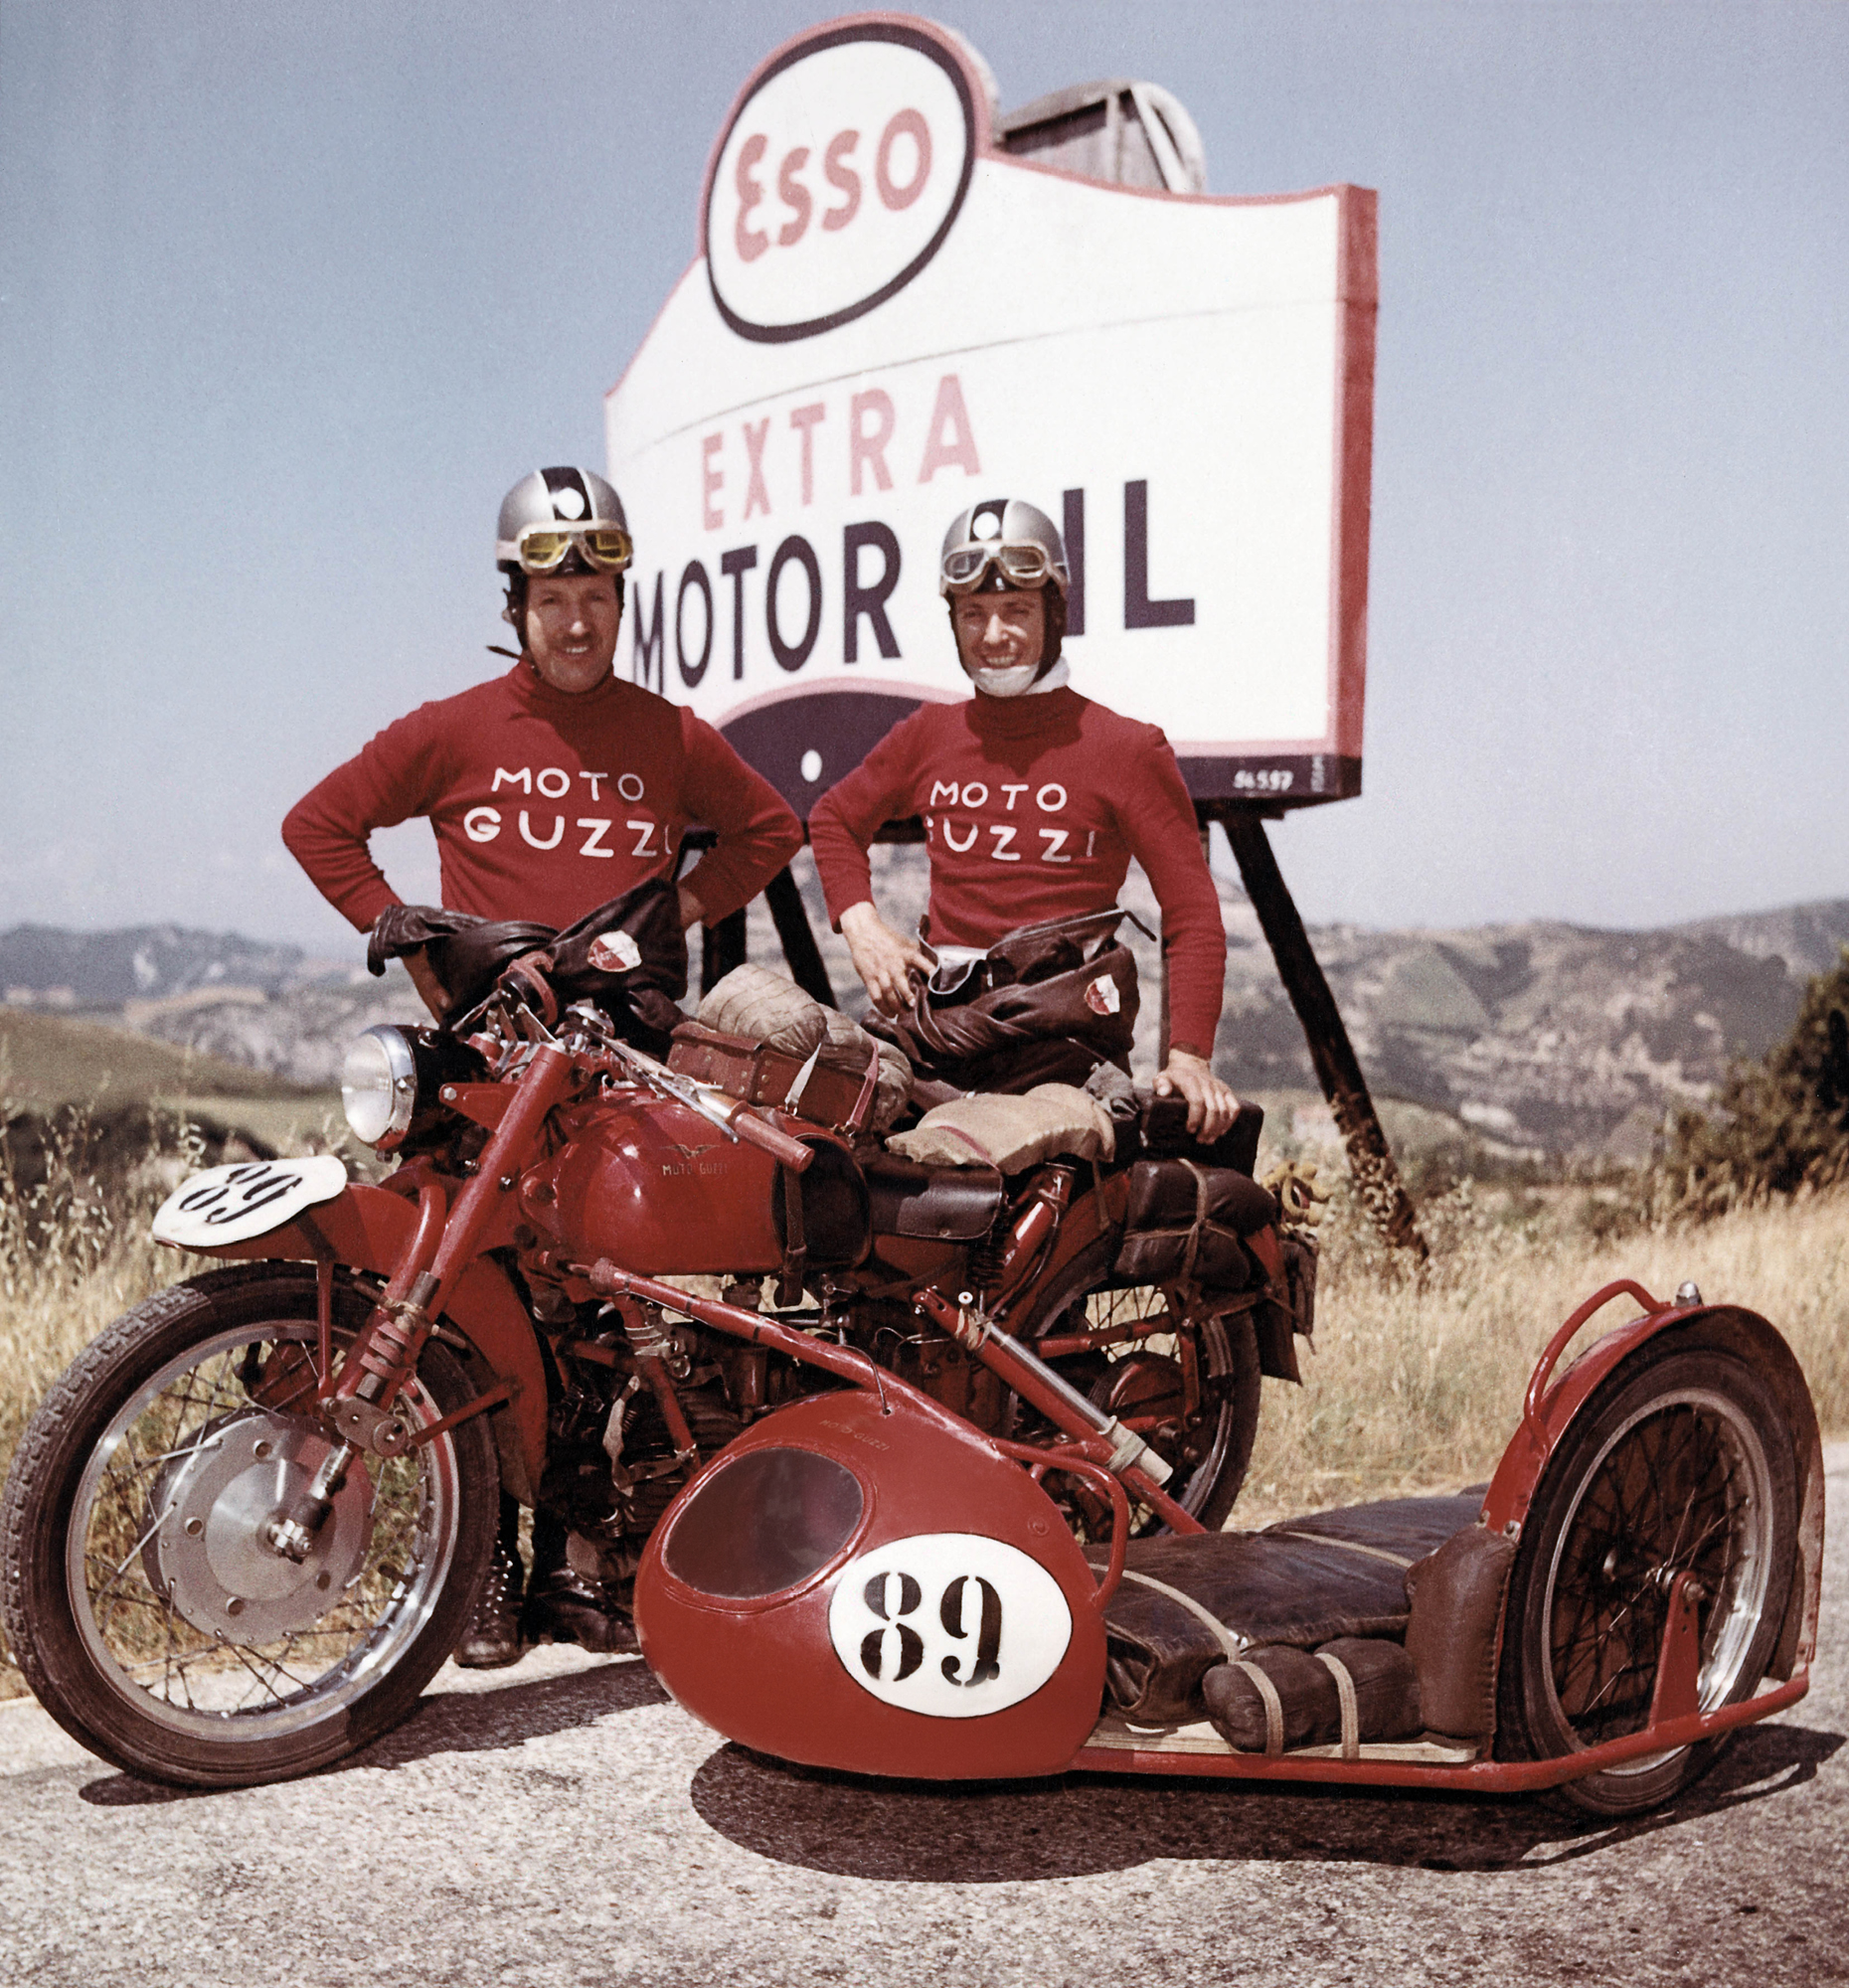 Racers at the 1953 Milano Taranto motorcycling event